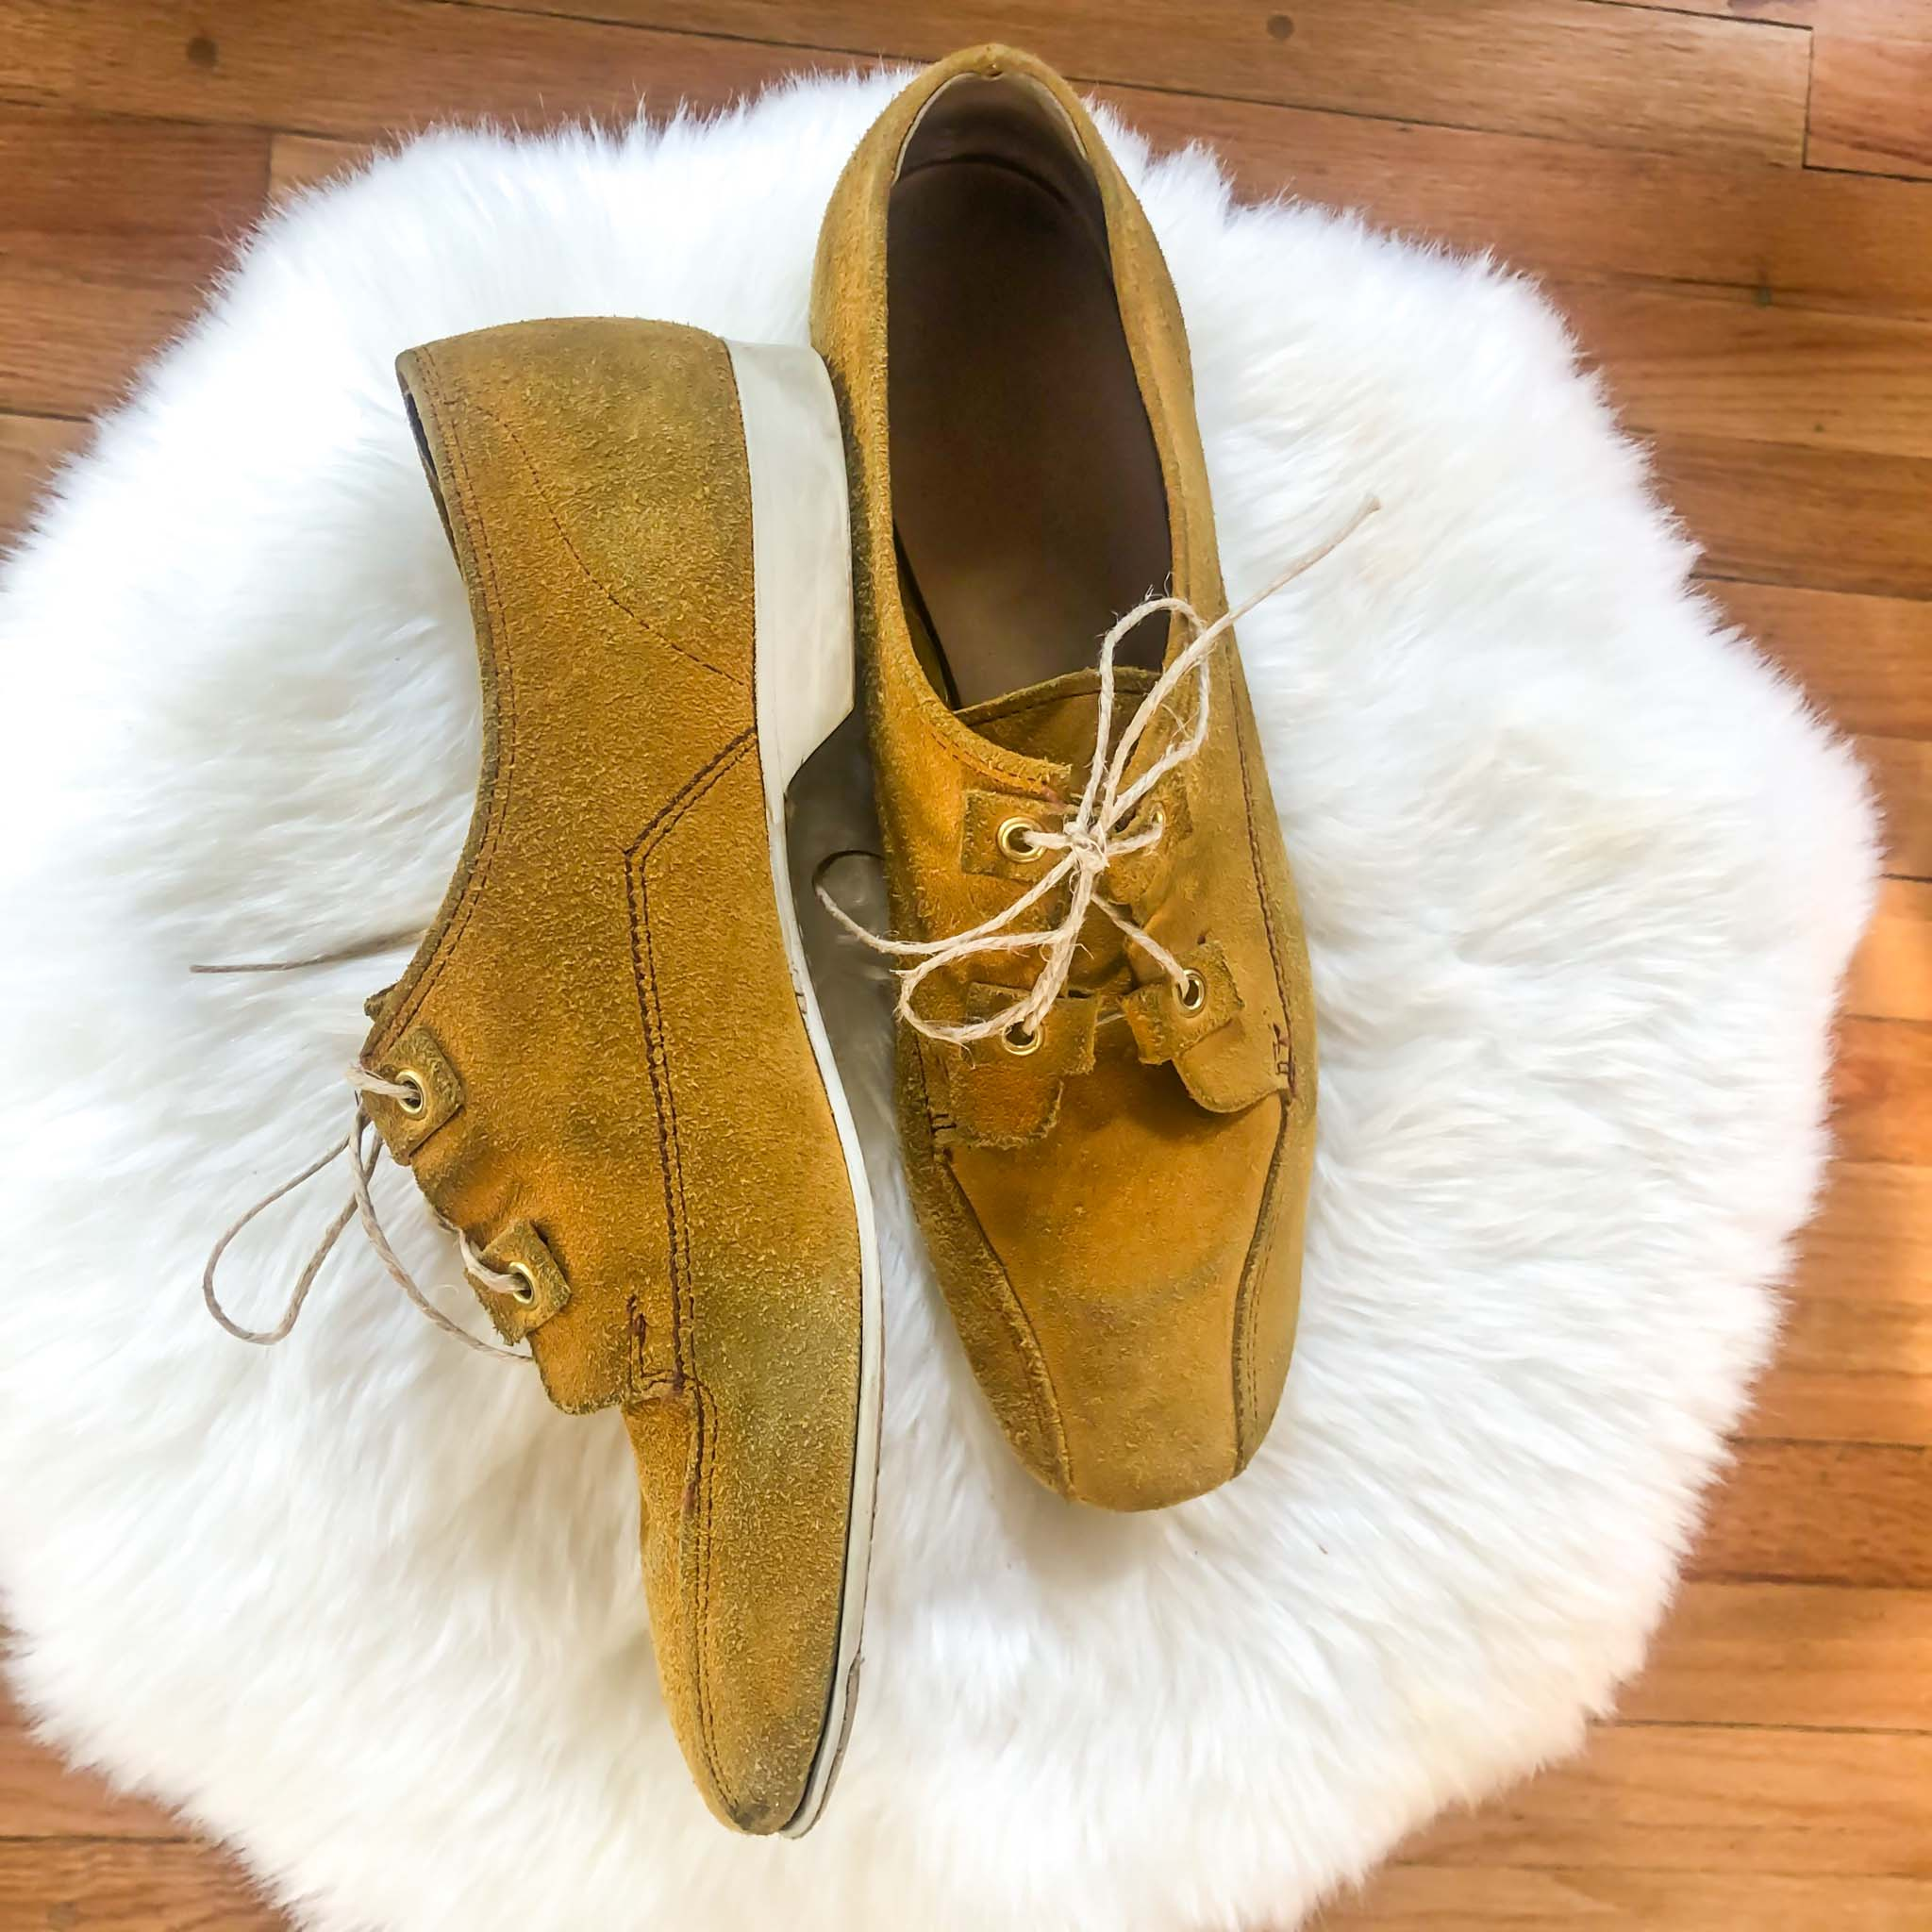 Vintage Suede Bowling Shoes : 8 Narrow : Chartreuse